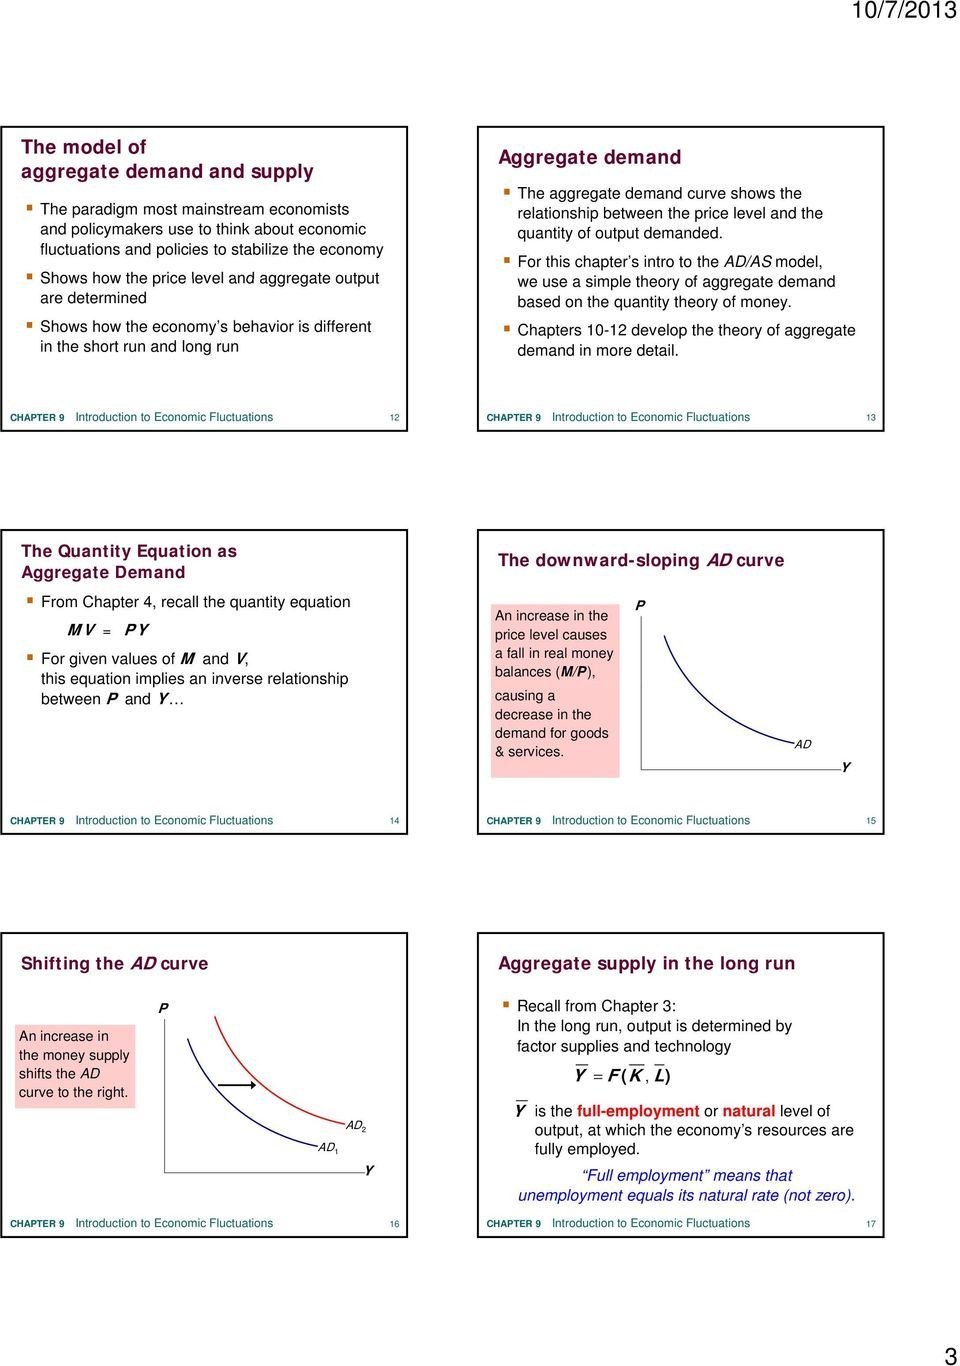 price level and the quantity of output demanded. For this chapter s intro to the D/S model, we use a simple theory of aggregate demand based on the quantity theory of money.